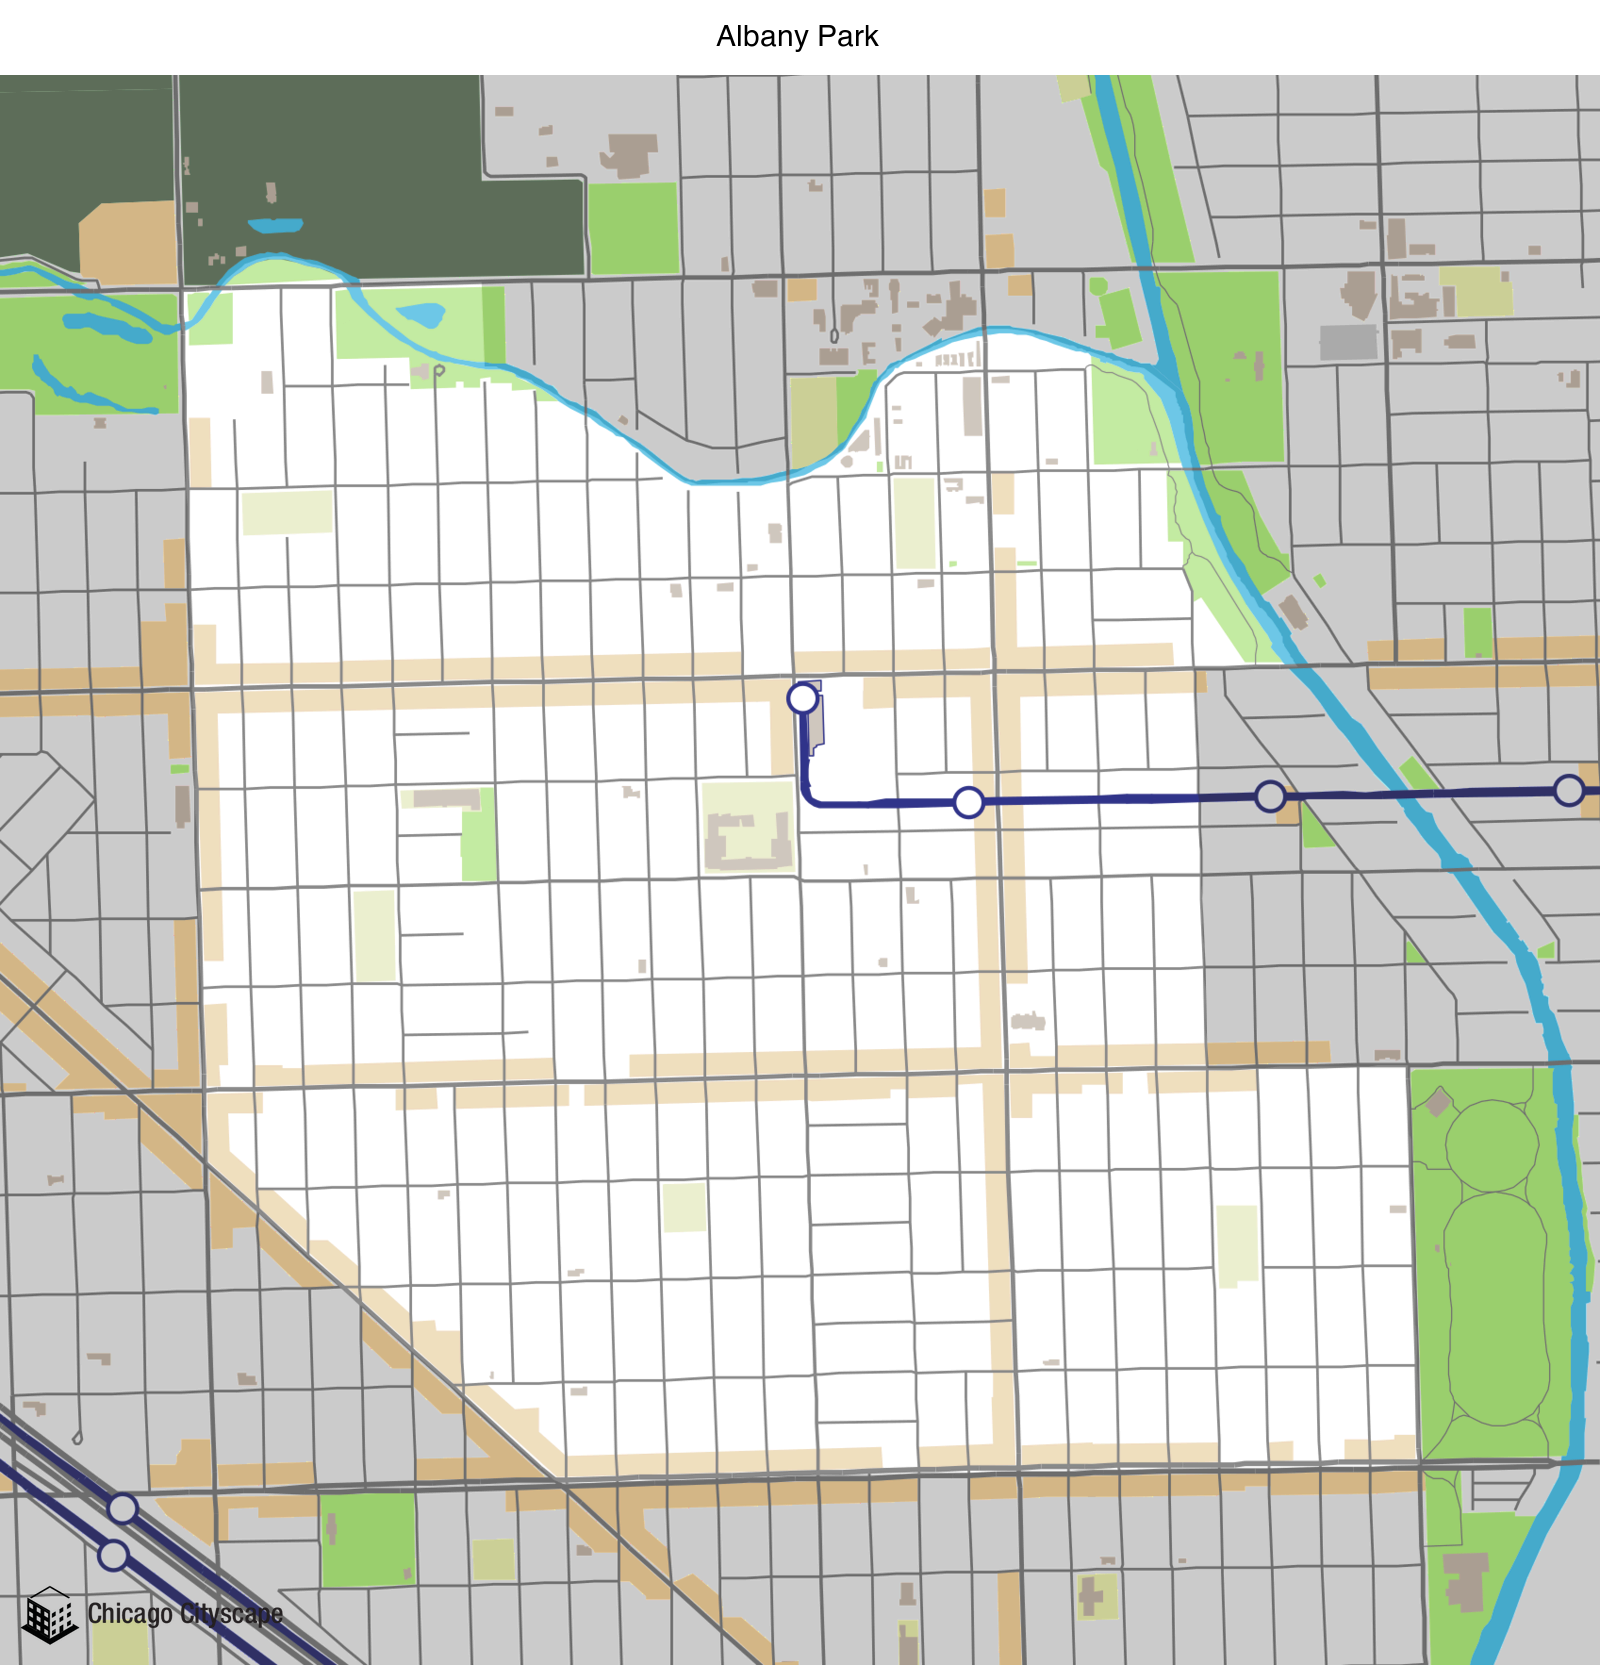 map of albany park neighborhood designed by chicago cityscape